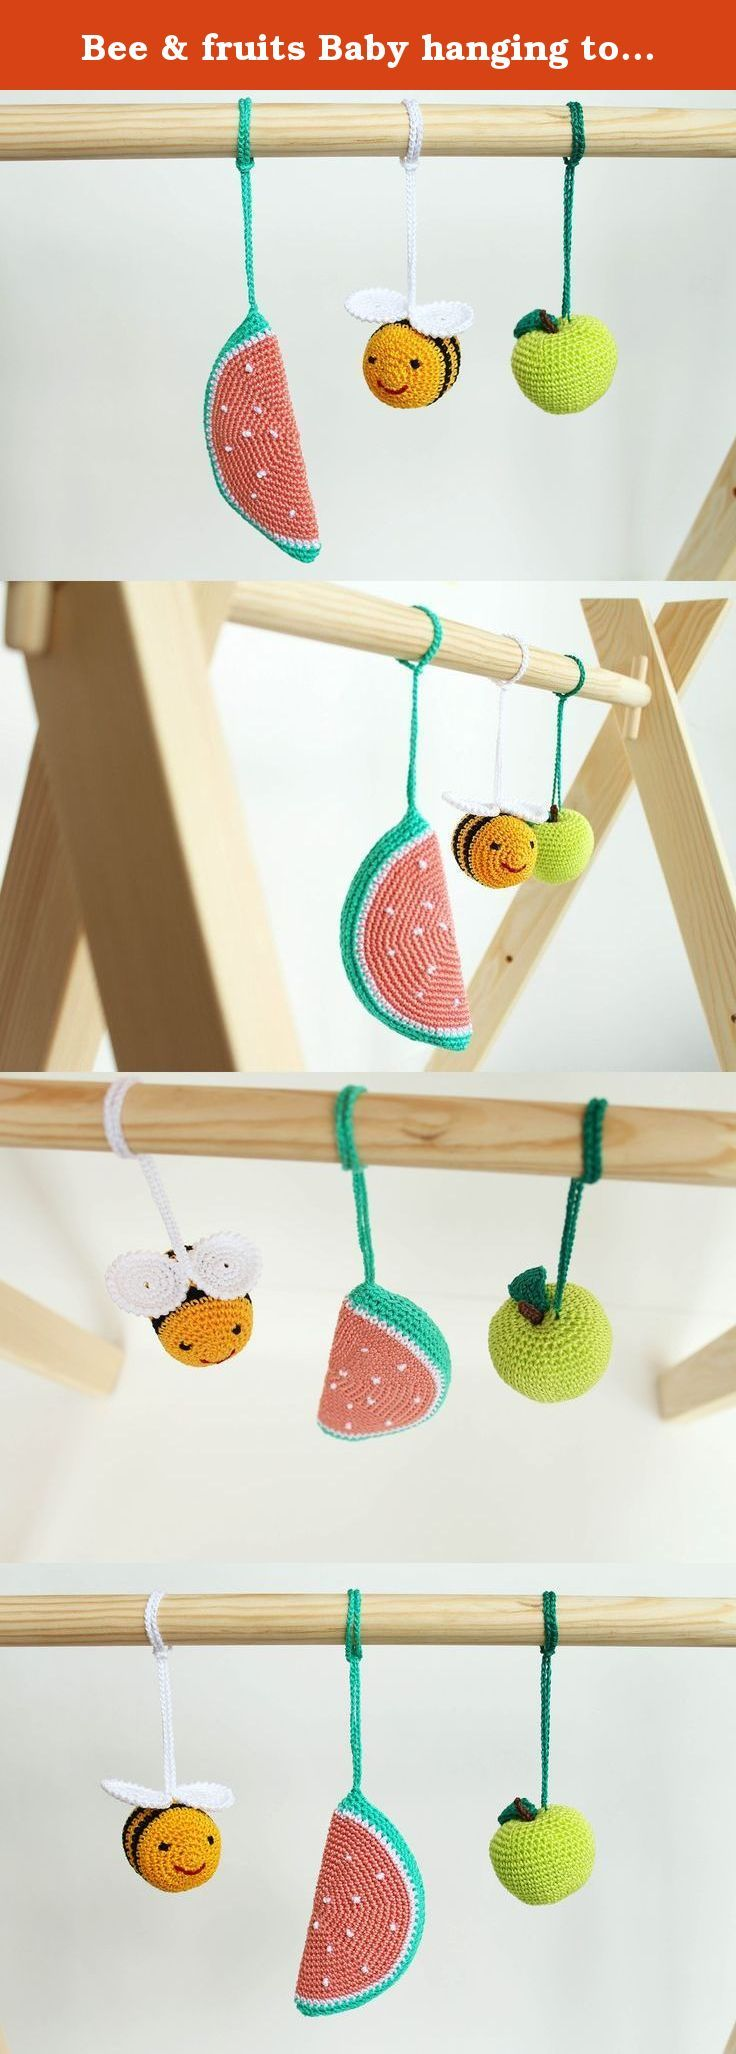 Bee & fruits Baby hanging toy, play gym toy, crib toy, Baby Rattle, nursery decoration, crochet, Montessori, shower newborn gift. This set of baby gym toys is made to entertain your baby and encourage important development skills. Your baby will get so much joy from the sensations, sounds and visual delights these fruits give. ♥ Two colorful fruits (an apple,a slice of watermelon) and a flying bee will capture your baby's attention. ♥ The items are handcrafted with pleasant sounding small...